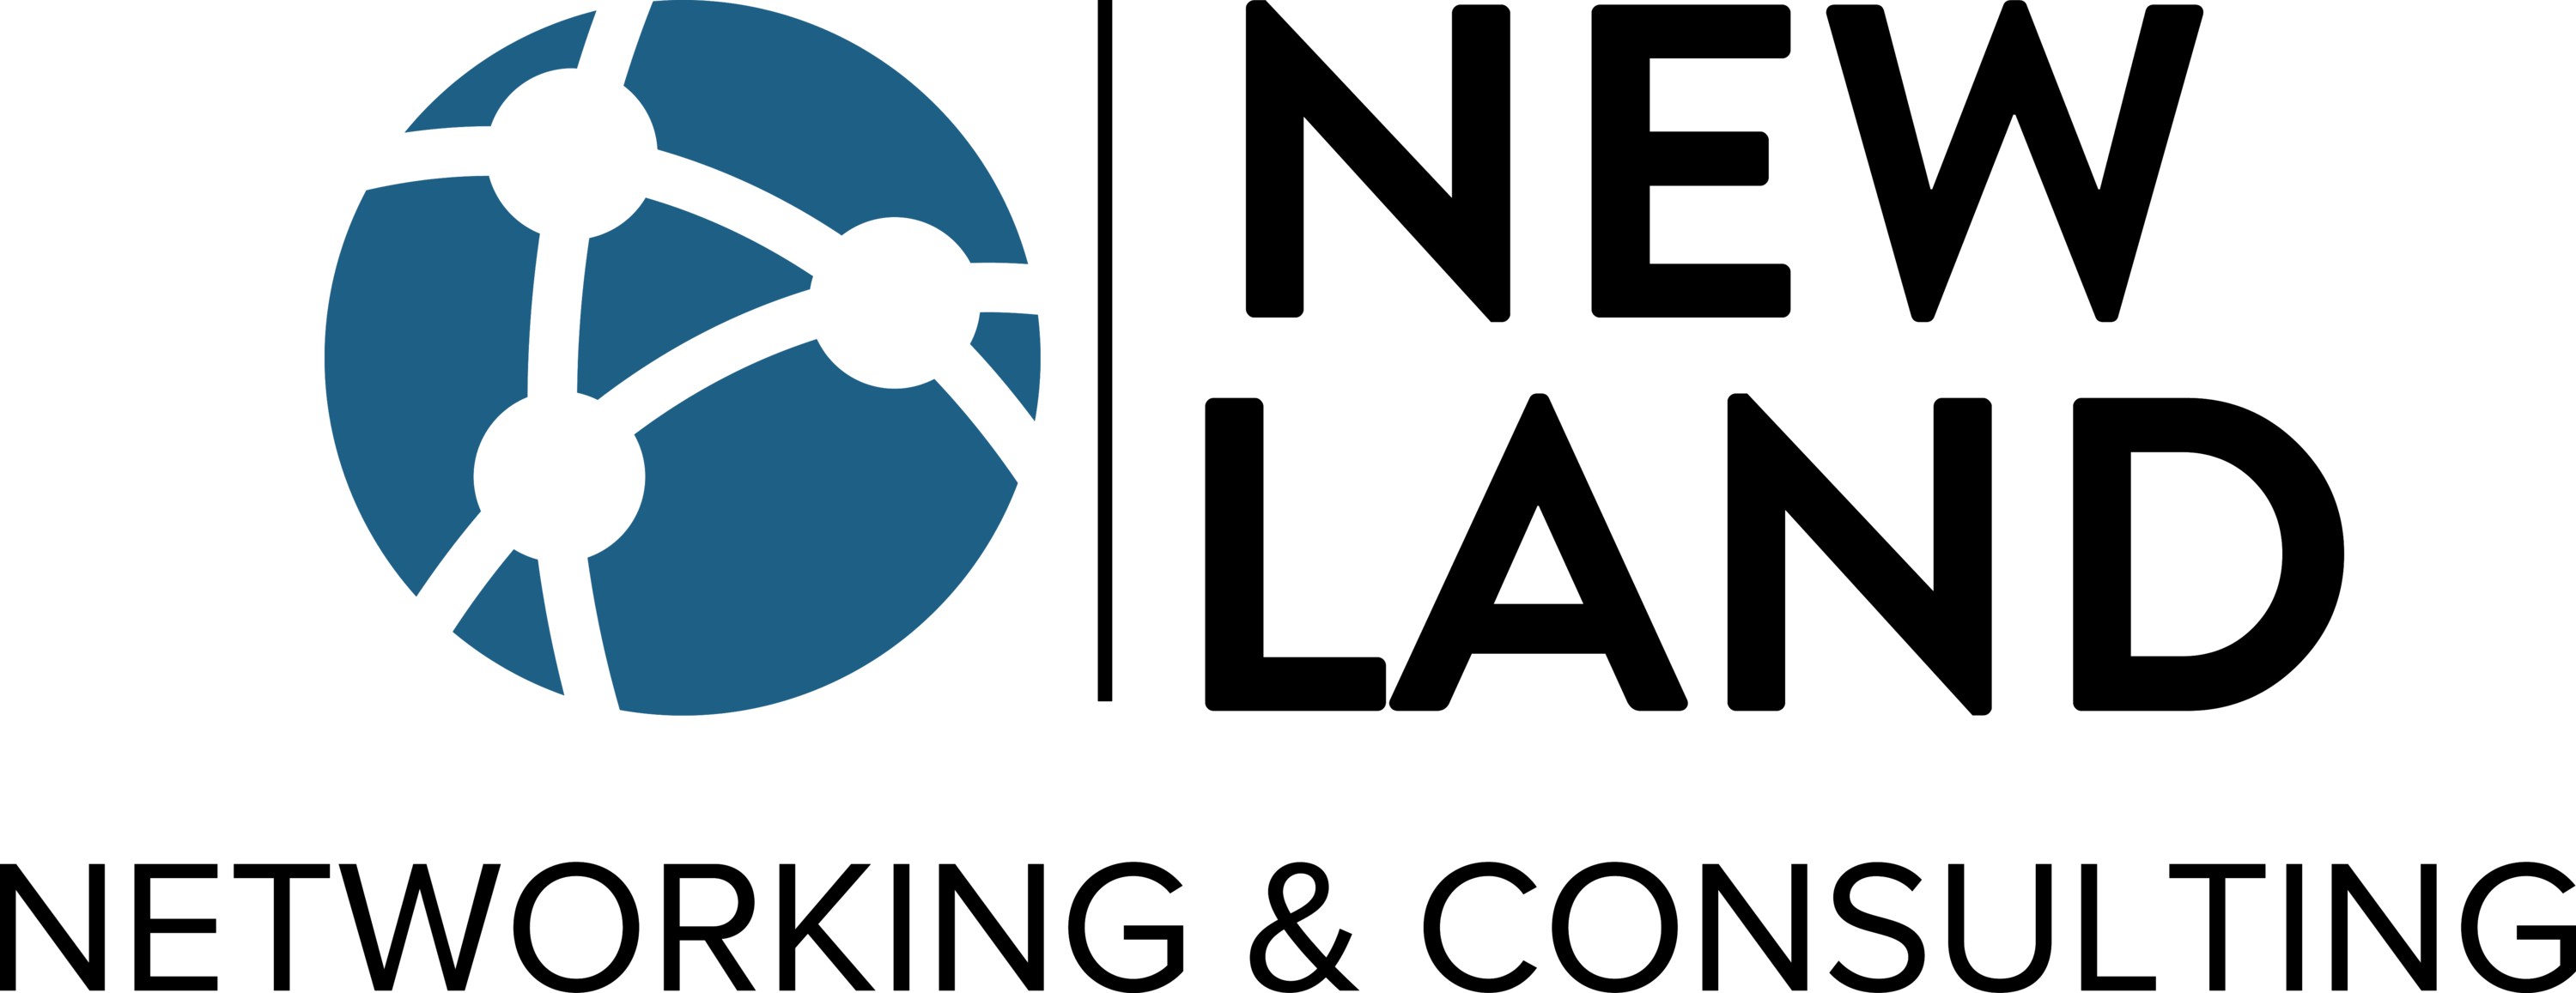 New Land Networking & Consulting LLC